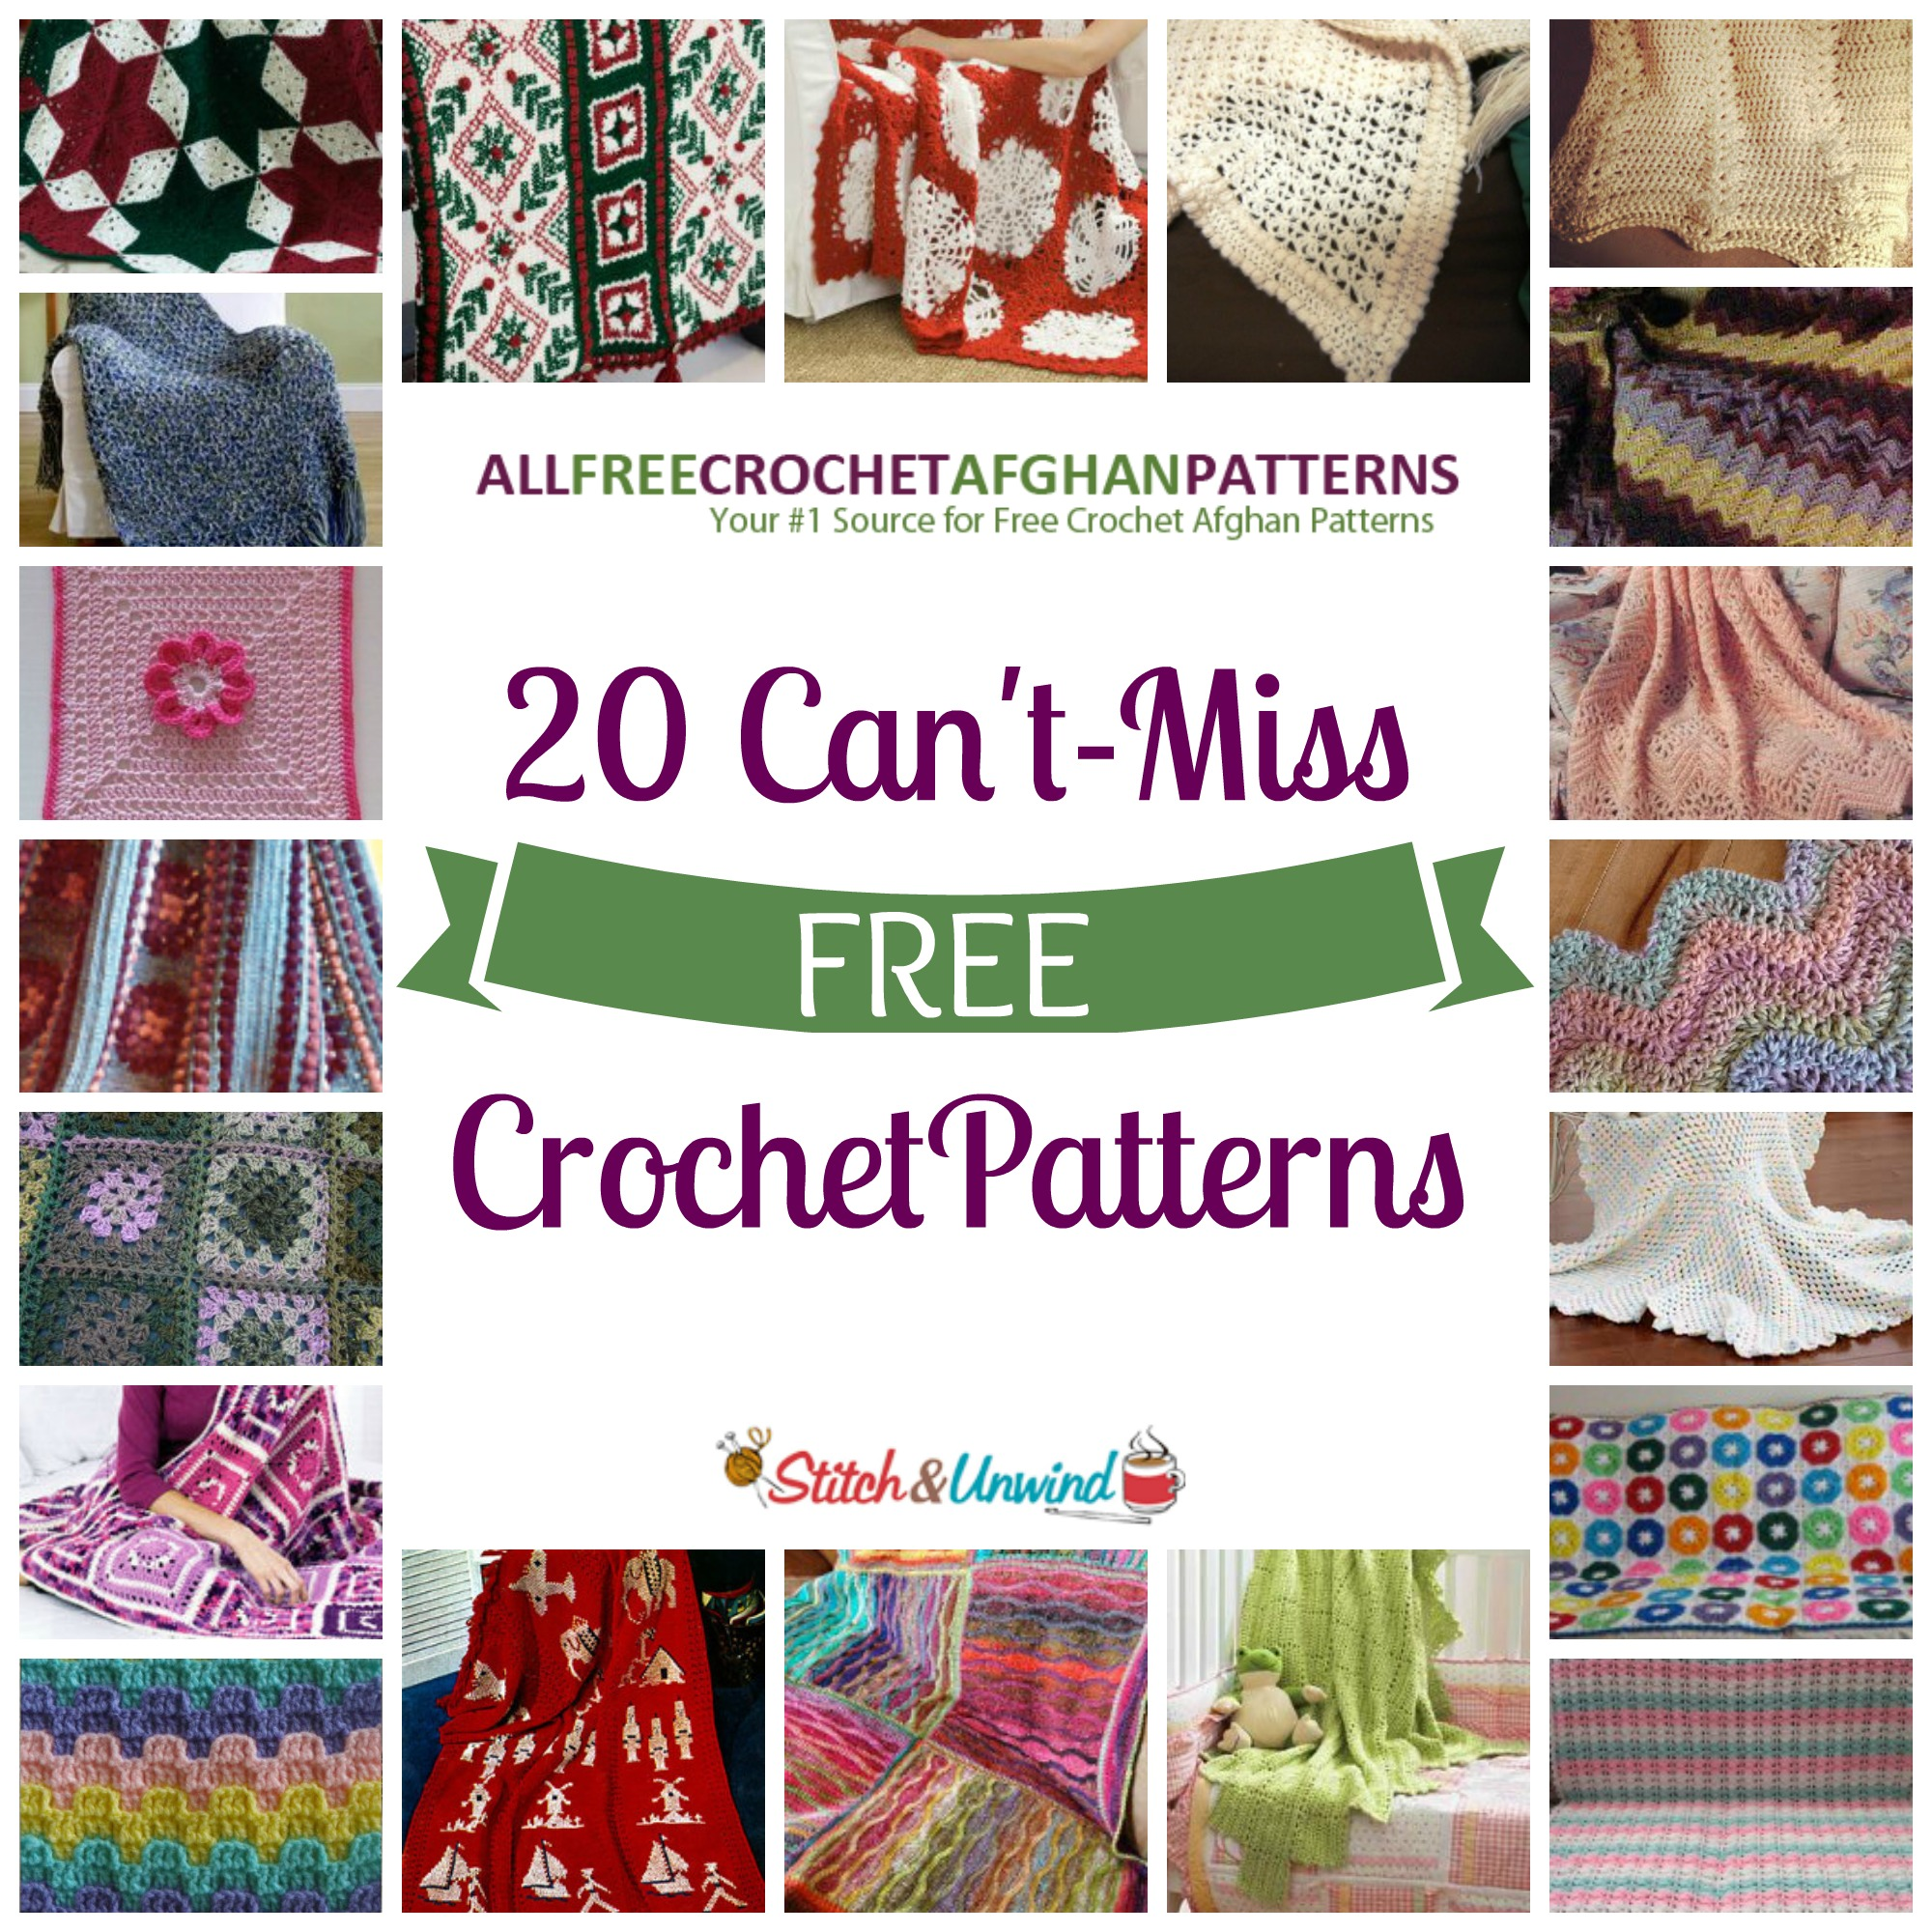 Free Online Christmas Crochet Afghan Patterns : 20 Cant-Miss Crochet Patterns - Stitch and Unwind